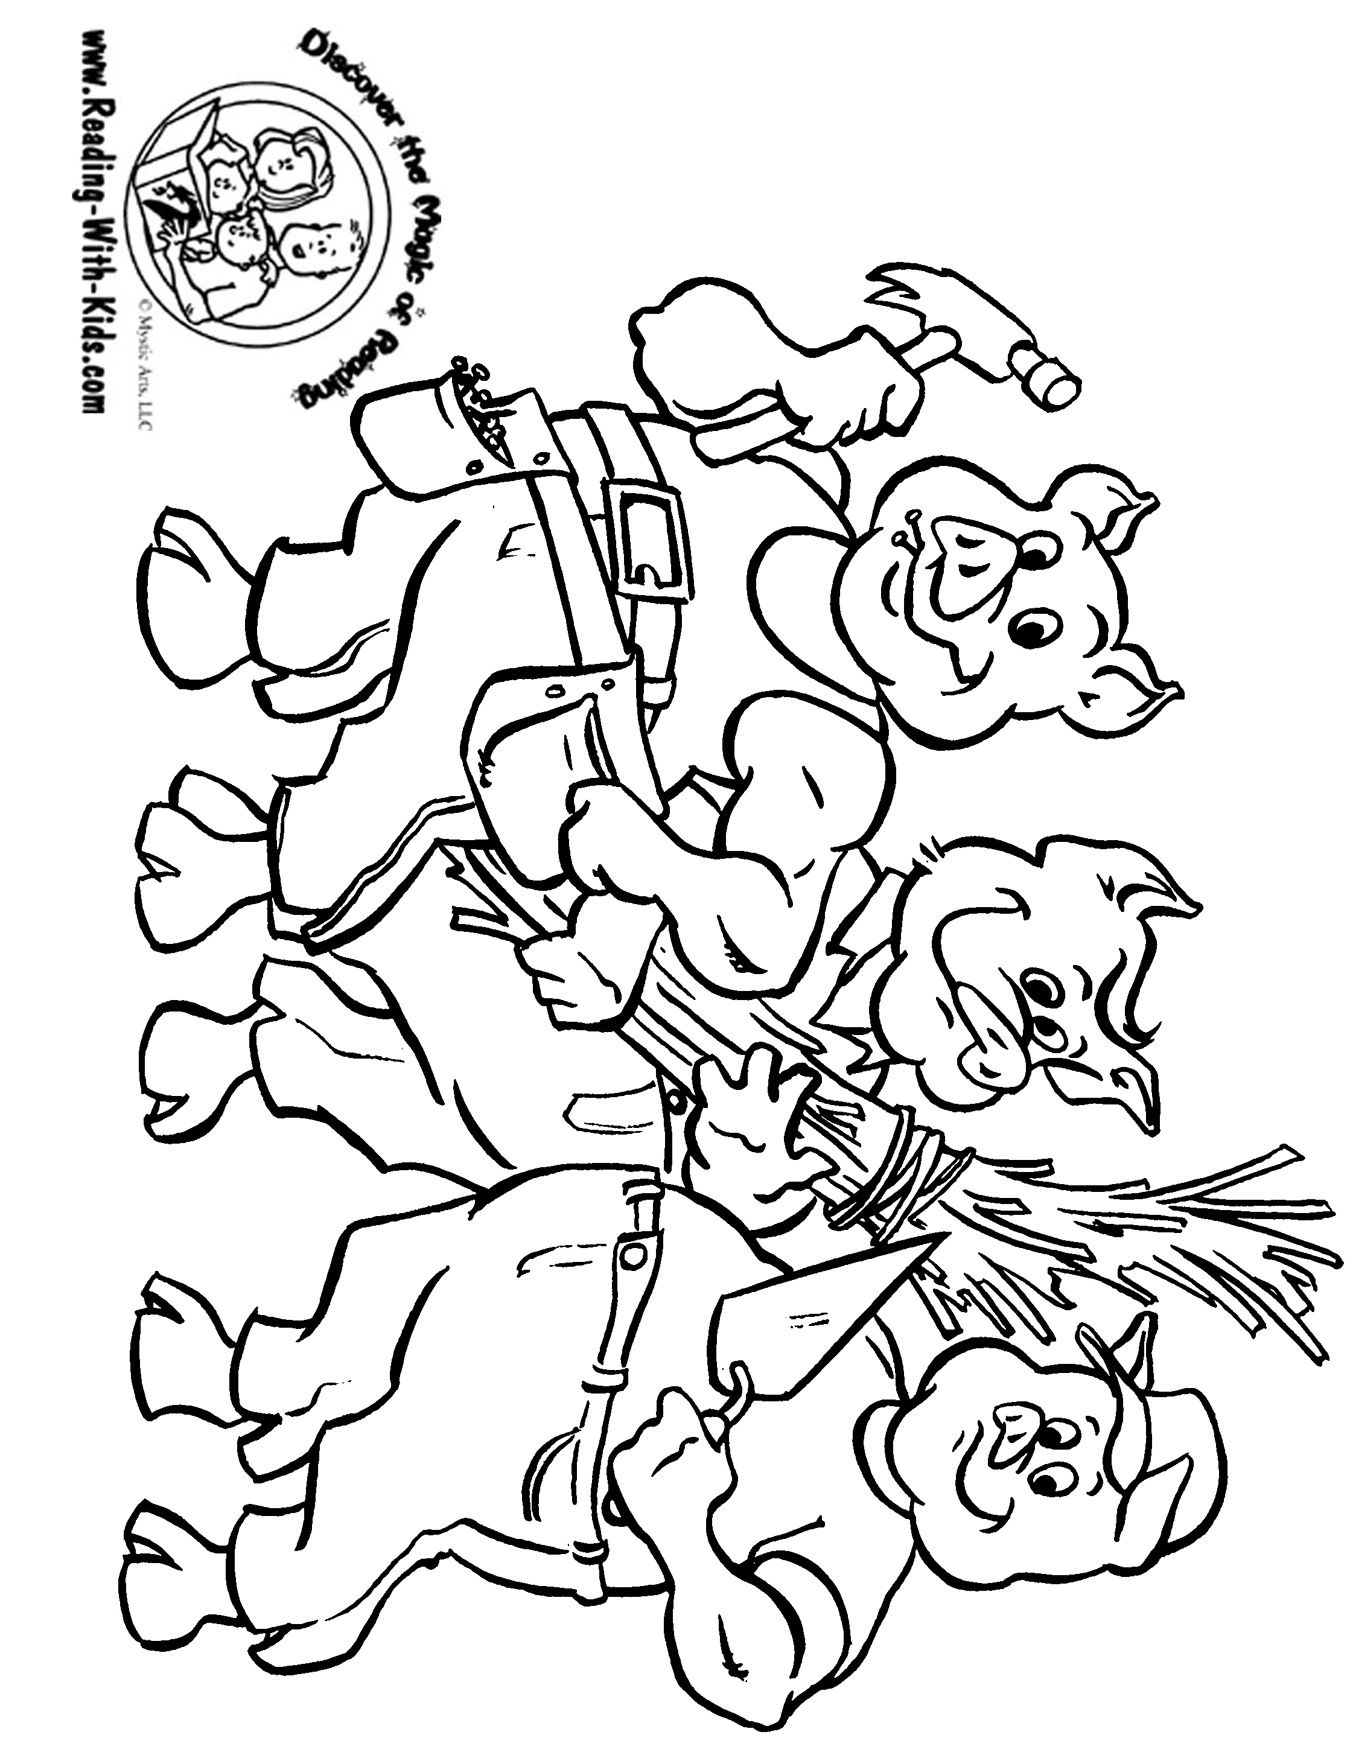 Five Little Ducks Coloring Page With Images